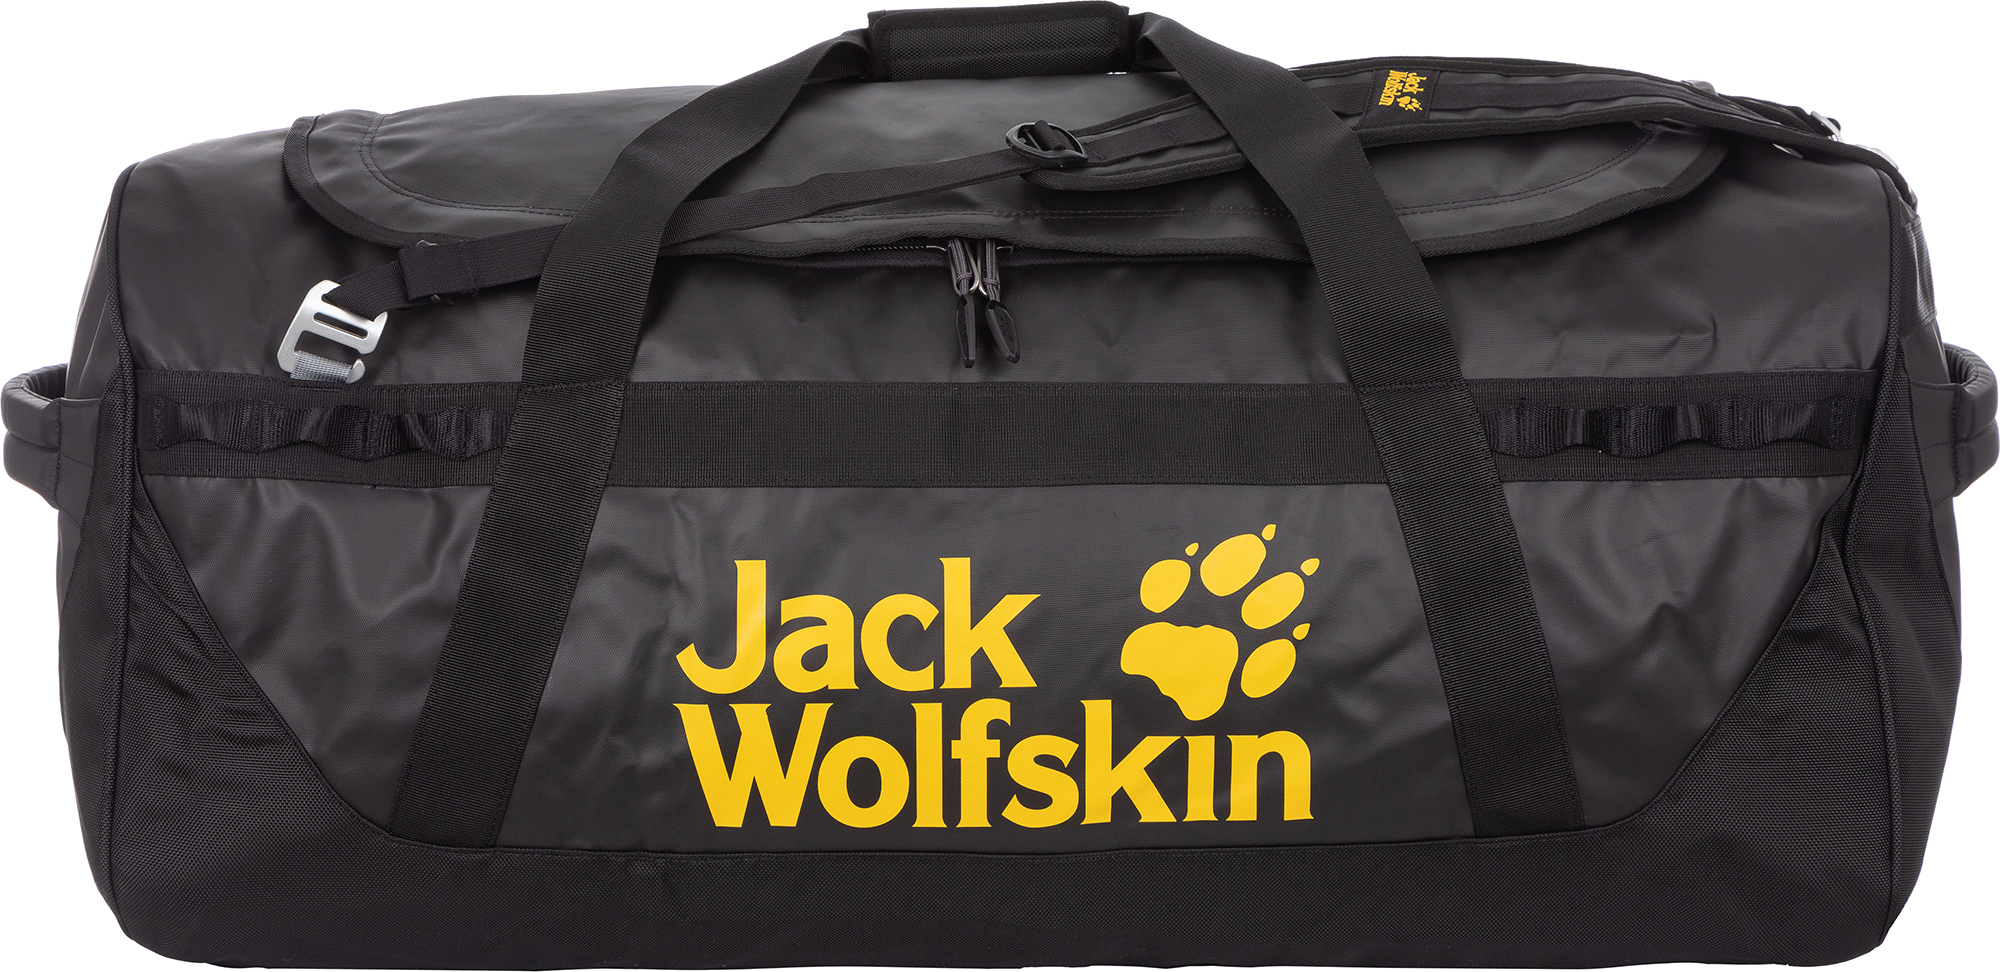 JACK WOLFSKIN Сумка JACK WOLFSKIN EXPEDITION TRUNK 130